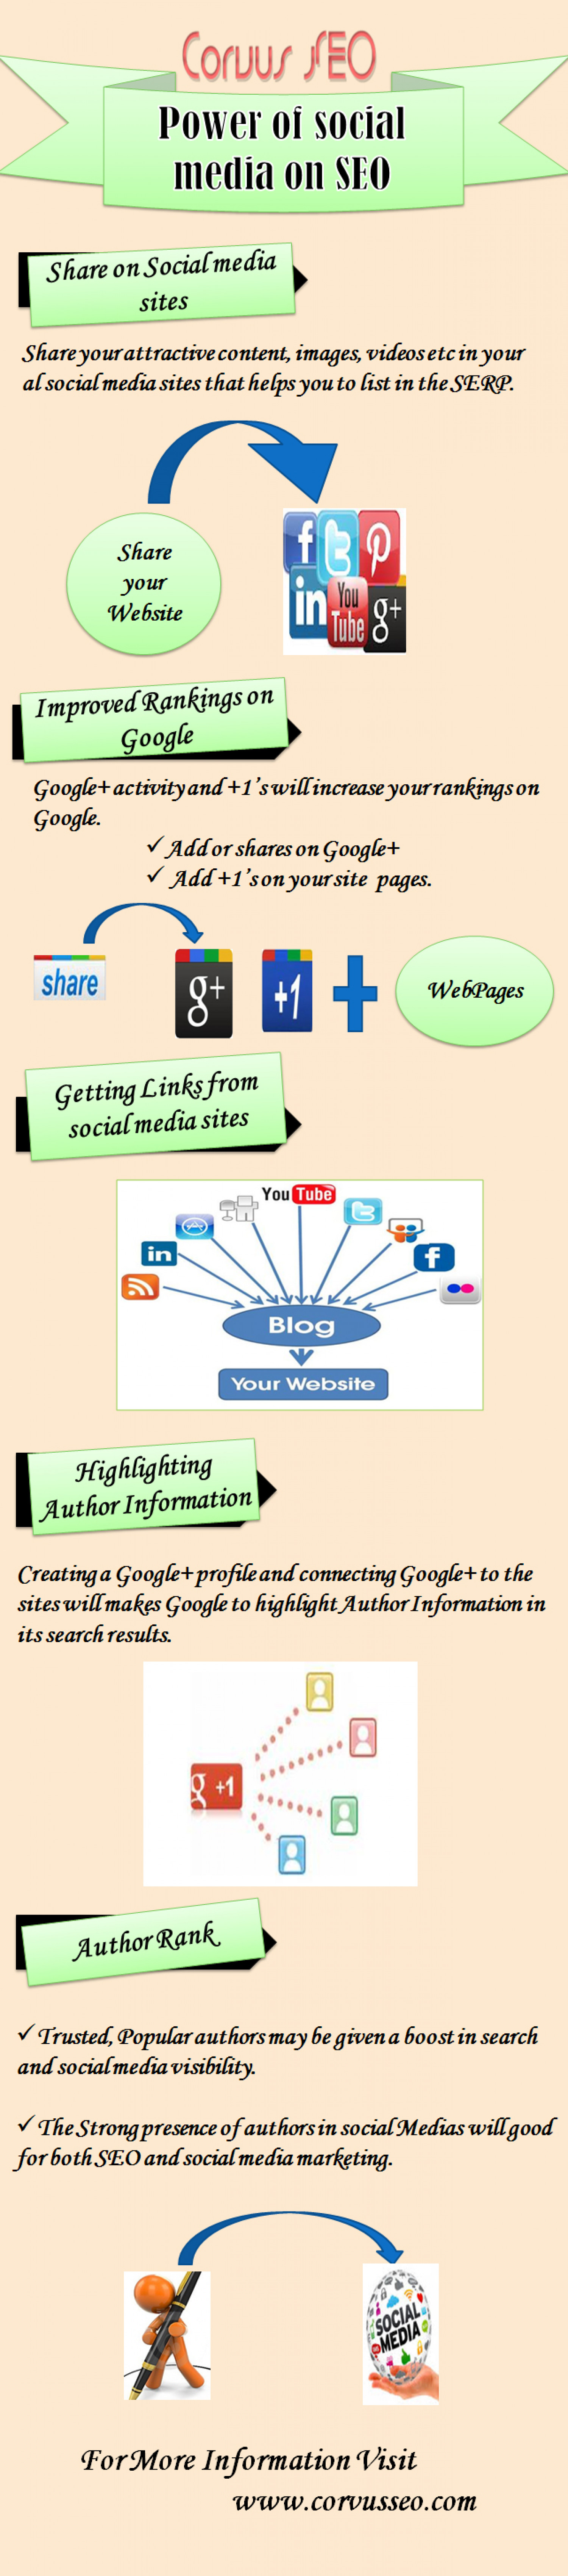 Power of Social media on SEO Infographic